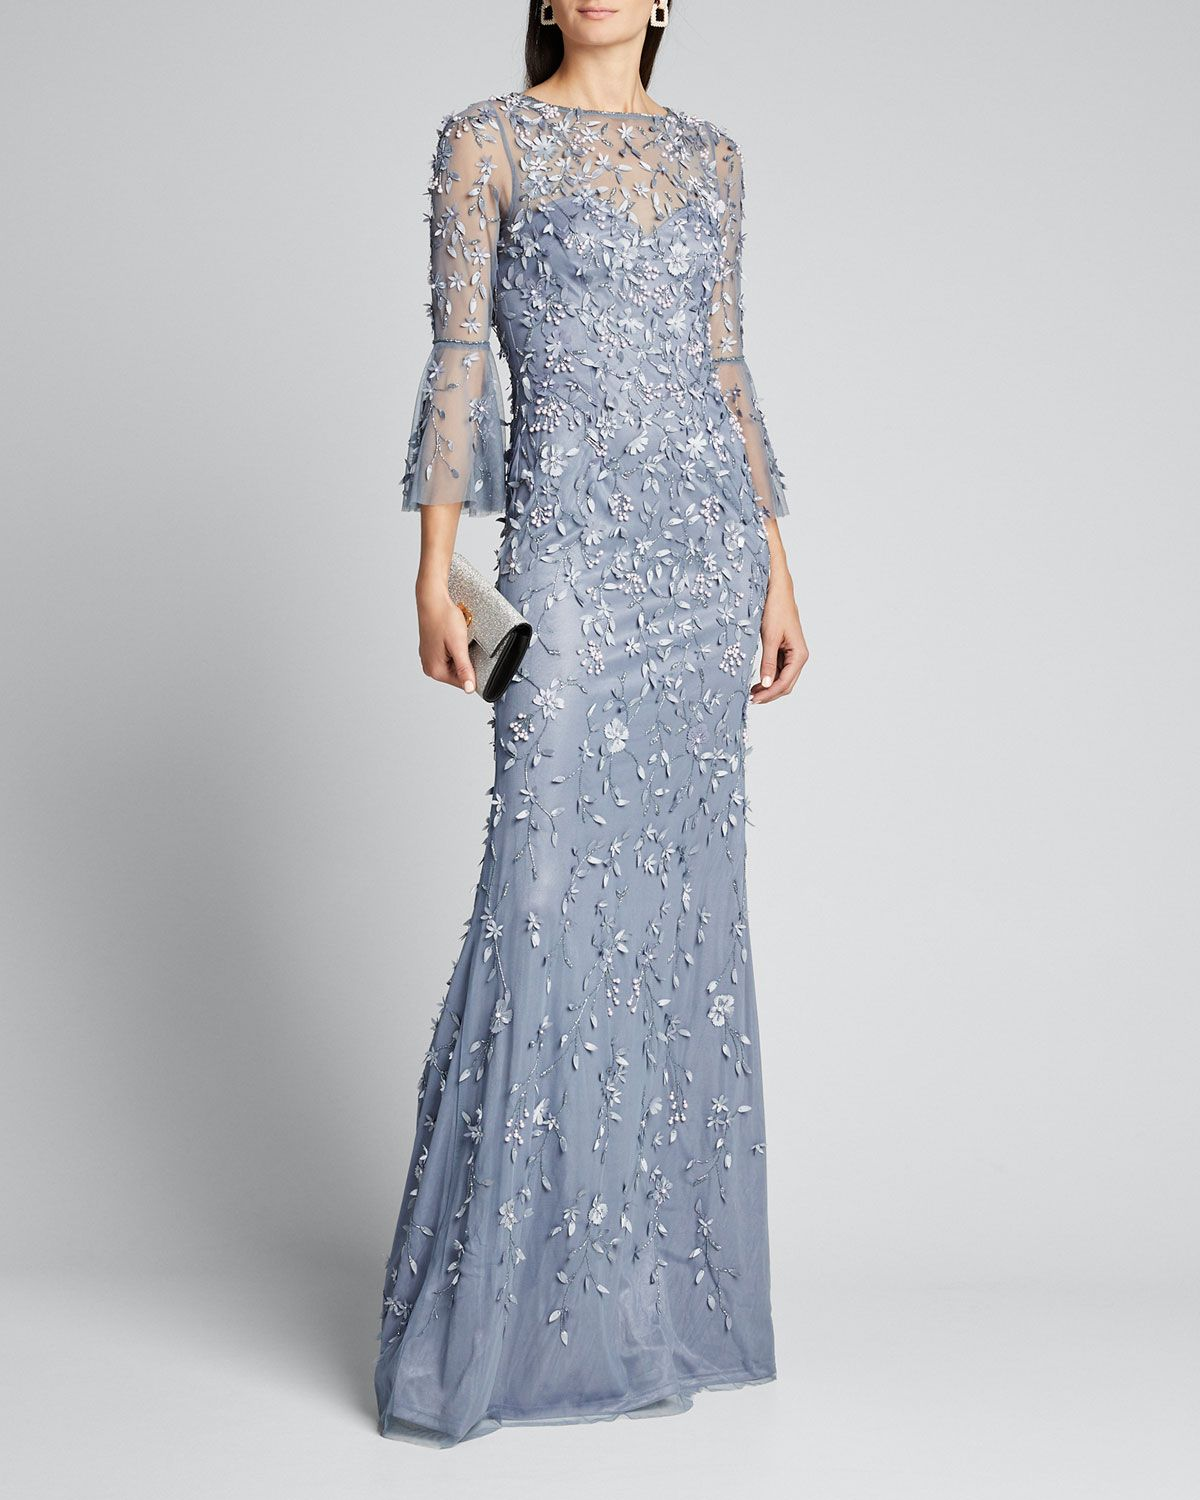 Theia Hand Beaded Petal Applique 3 4 Bell Sleeve Column Gown Theia Cloth Formal Dresses With Sleeves Column Gown Long Sleeve Dress [ 1500 x 1200 Pixel ]